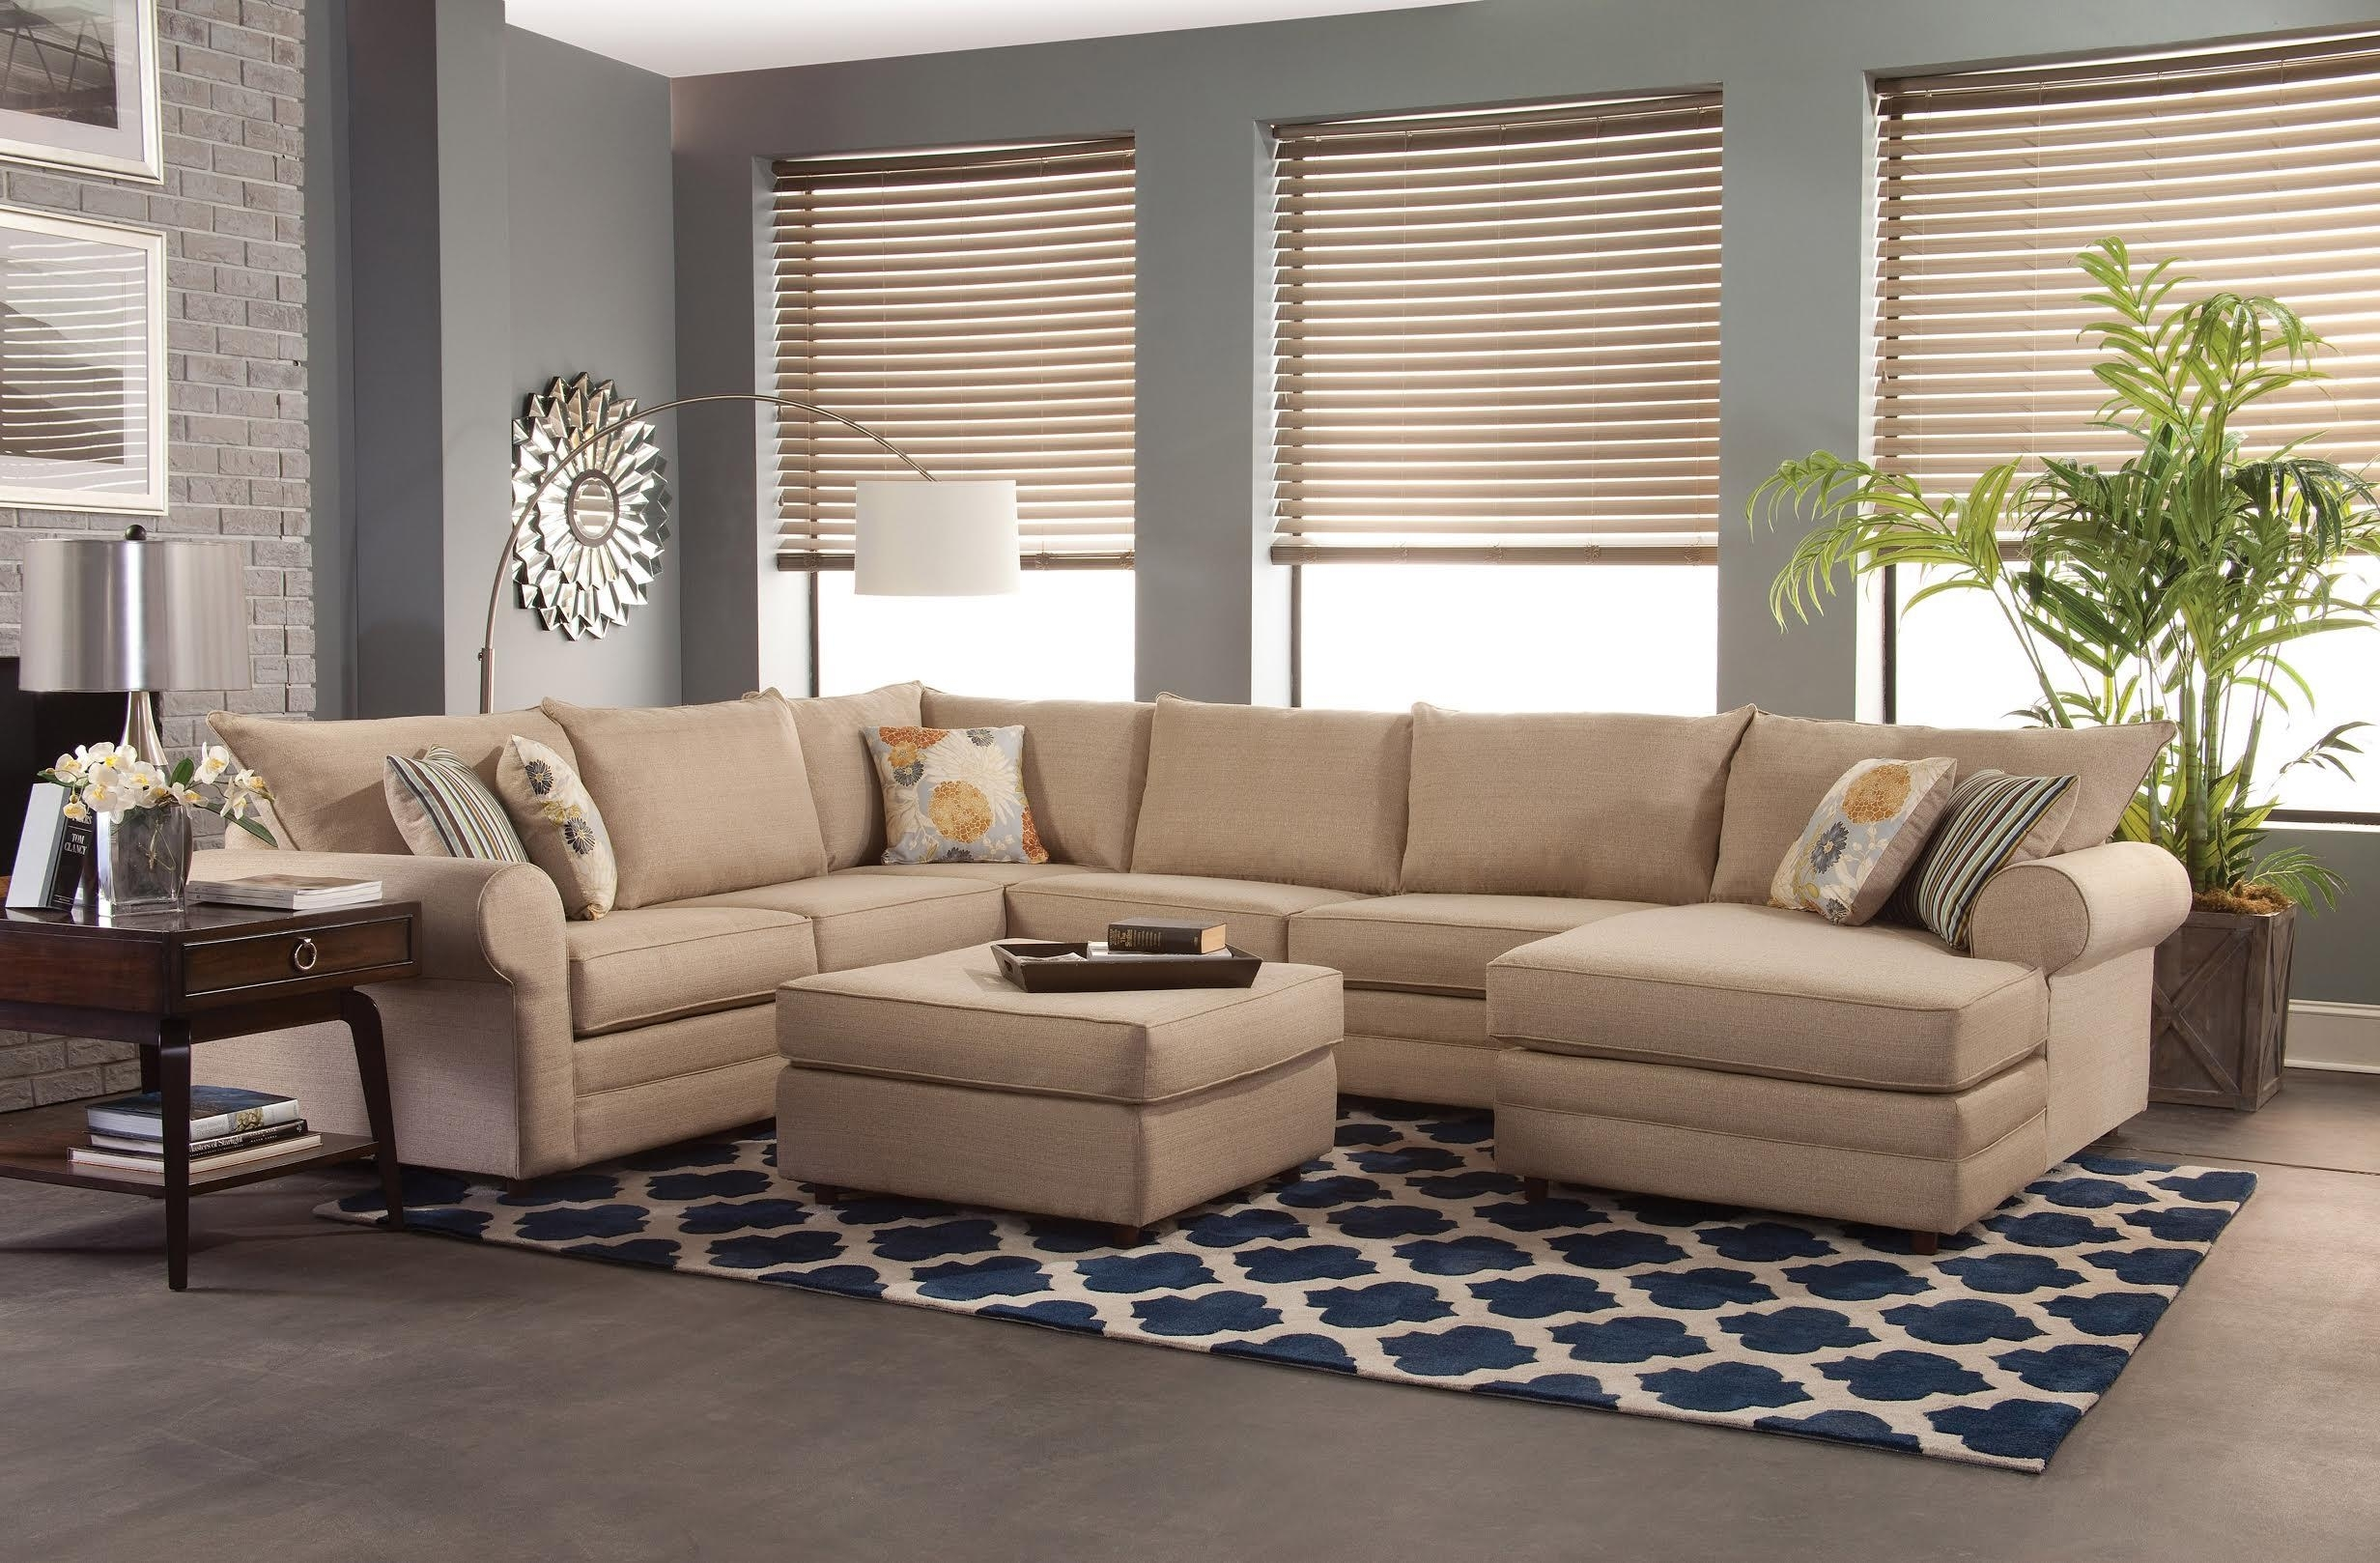 Sectional Sofas Maryland – Home And Textiles For Maryland Sofas (View 5 of 10)